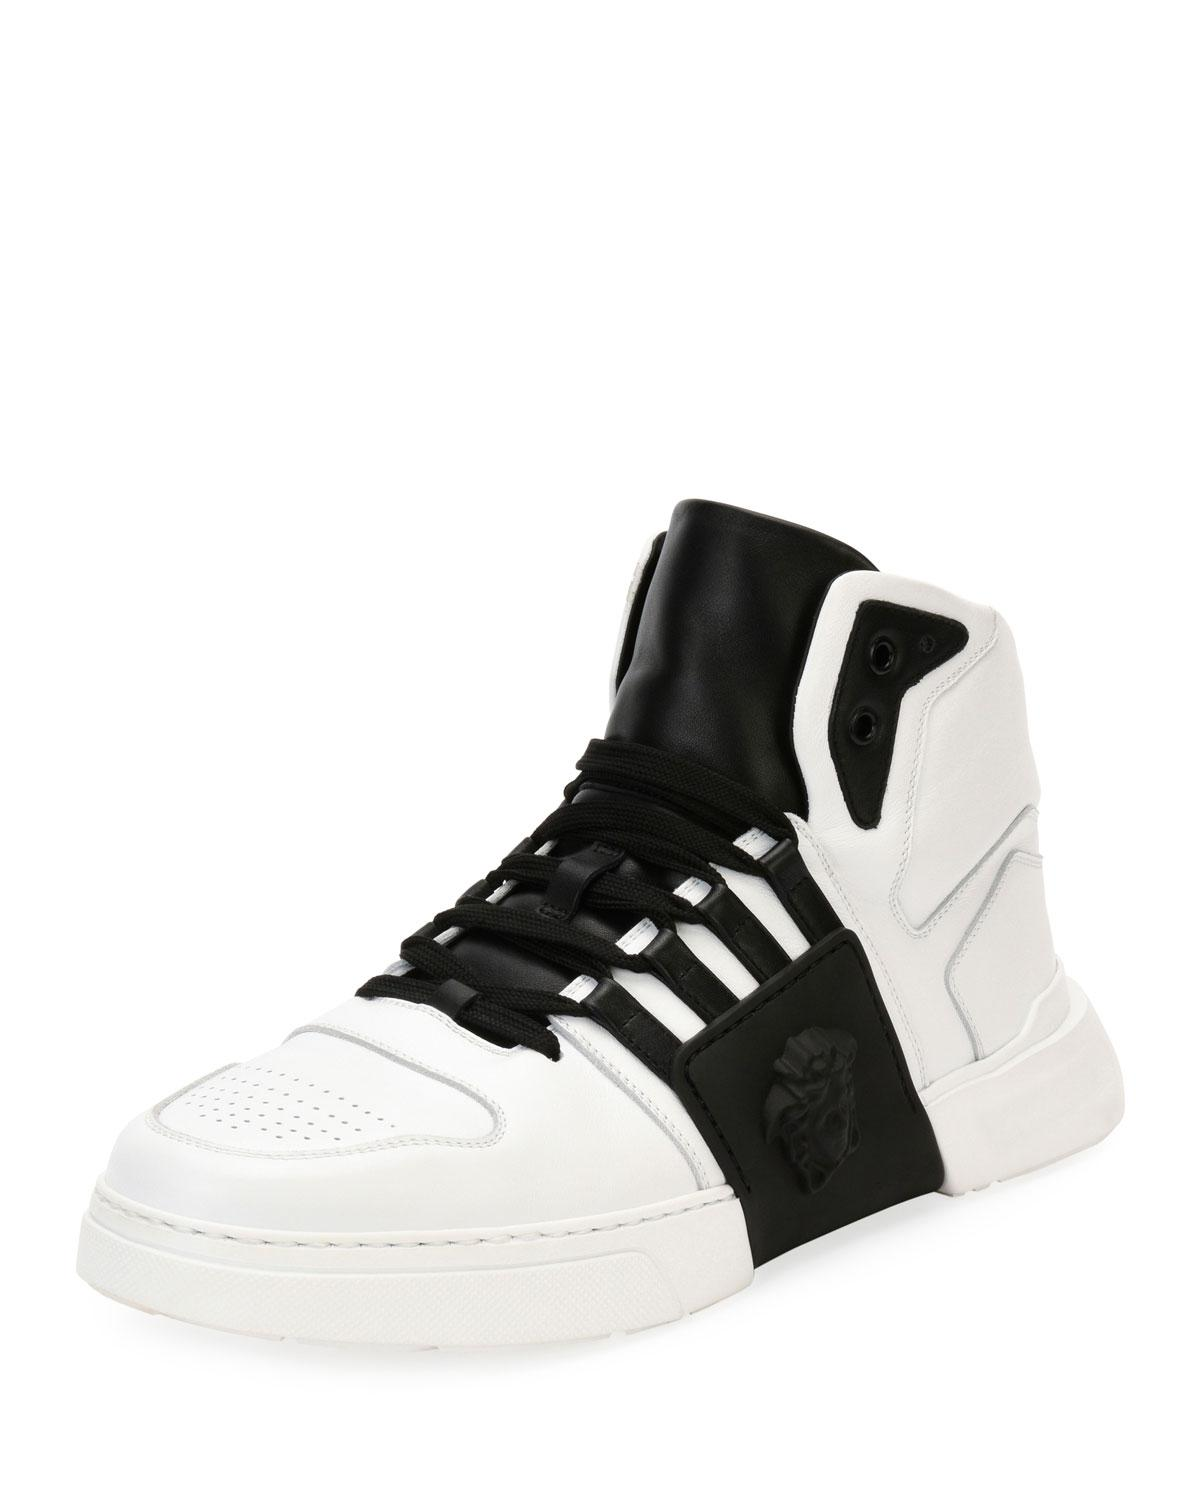 ee31d9e86e209 Versace Men s Fashion Show Medusa-Embossed High-Top Sneakers In White